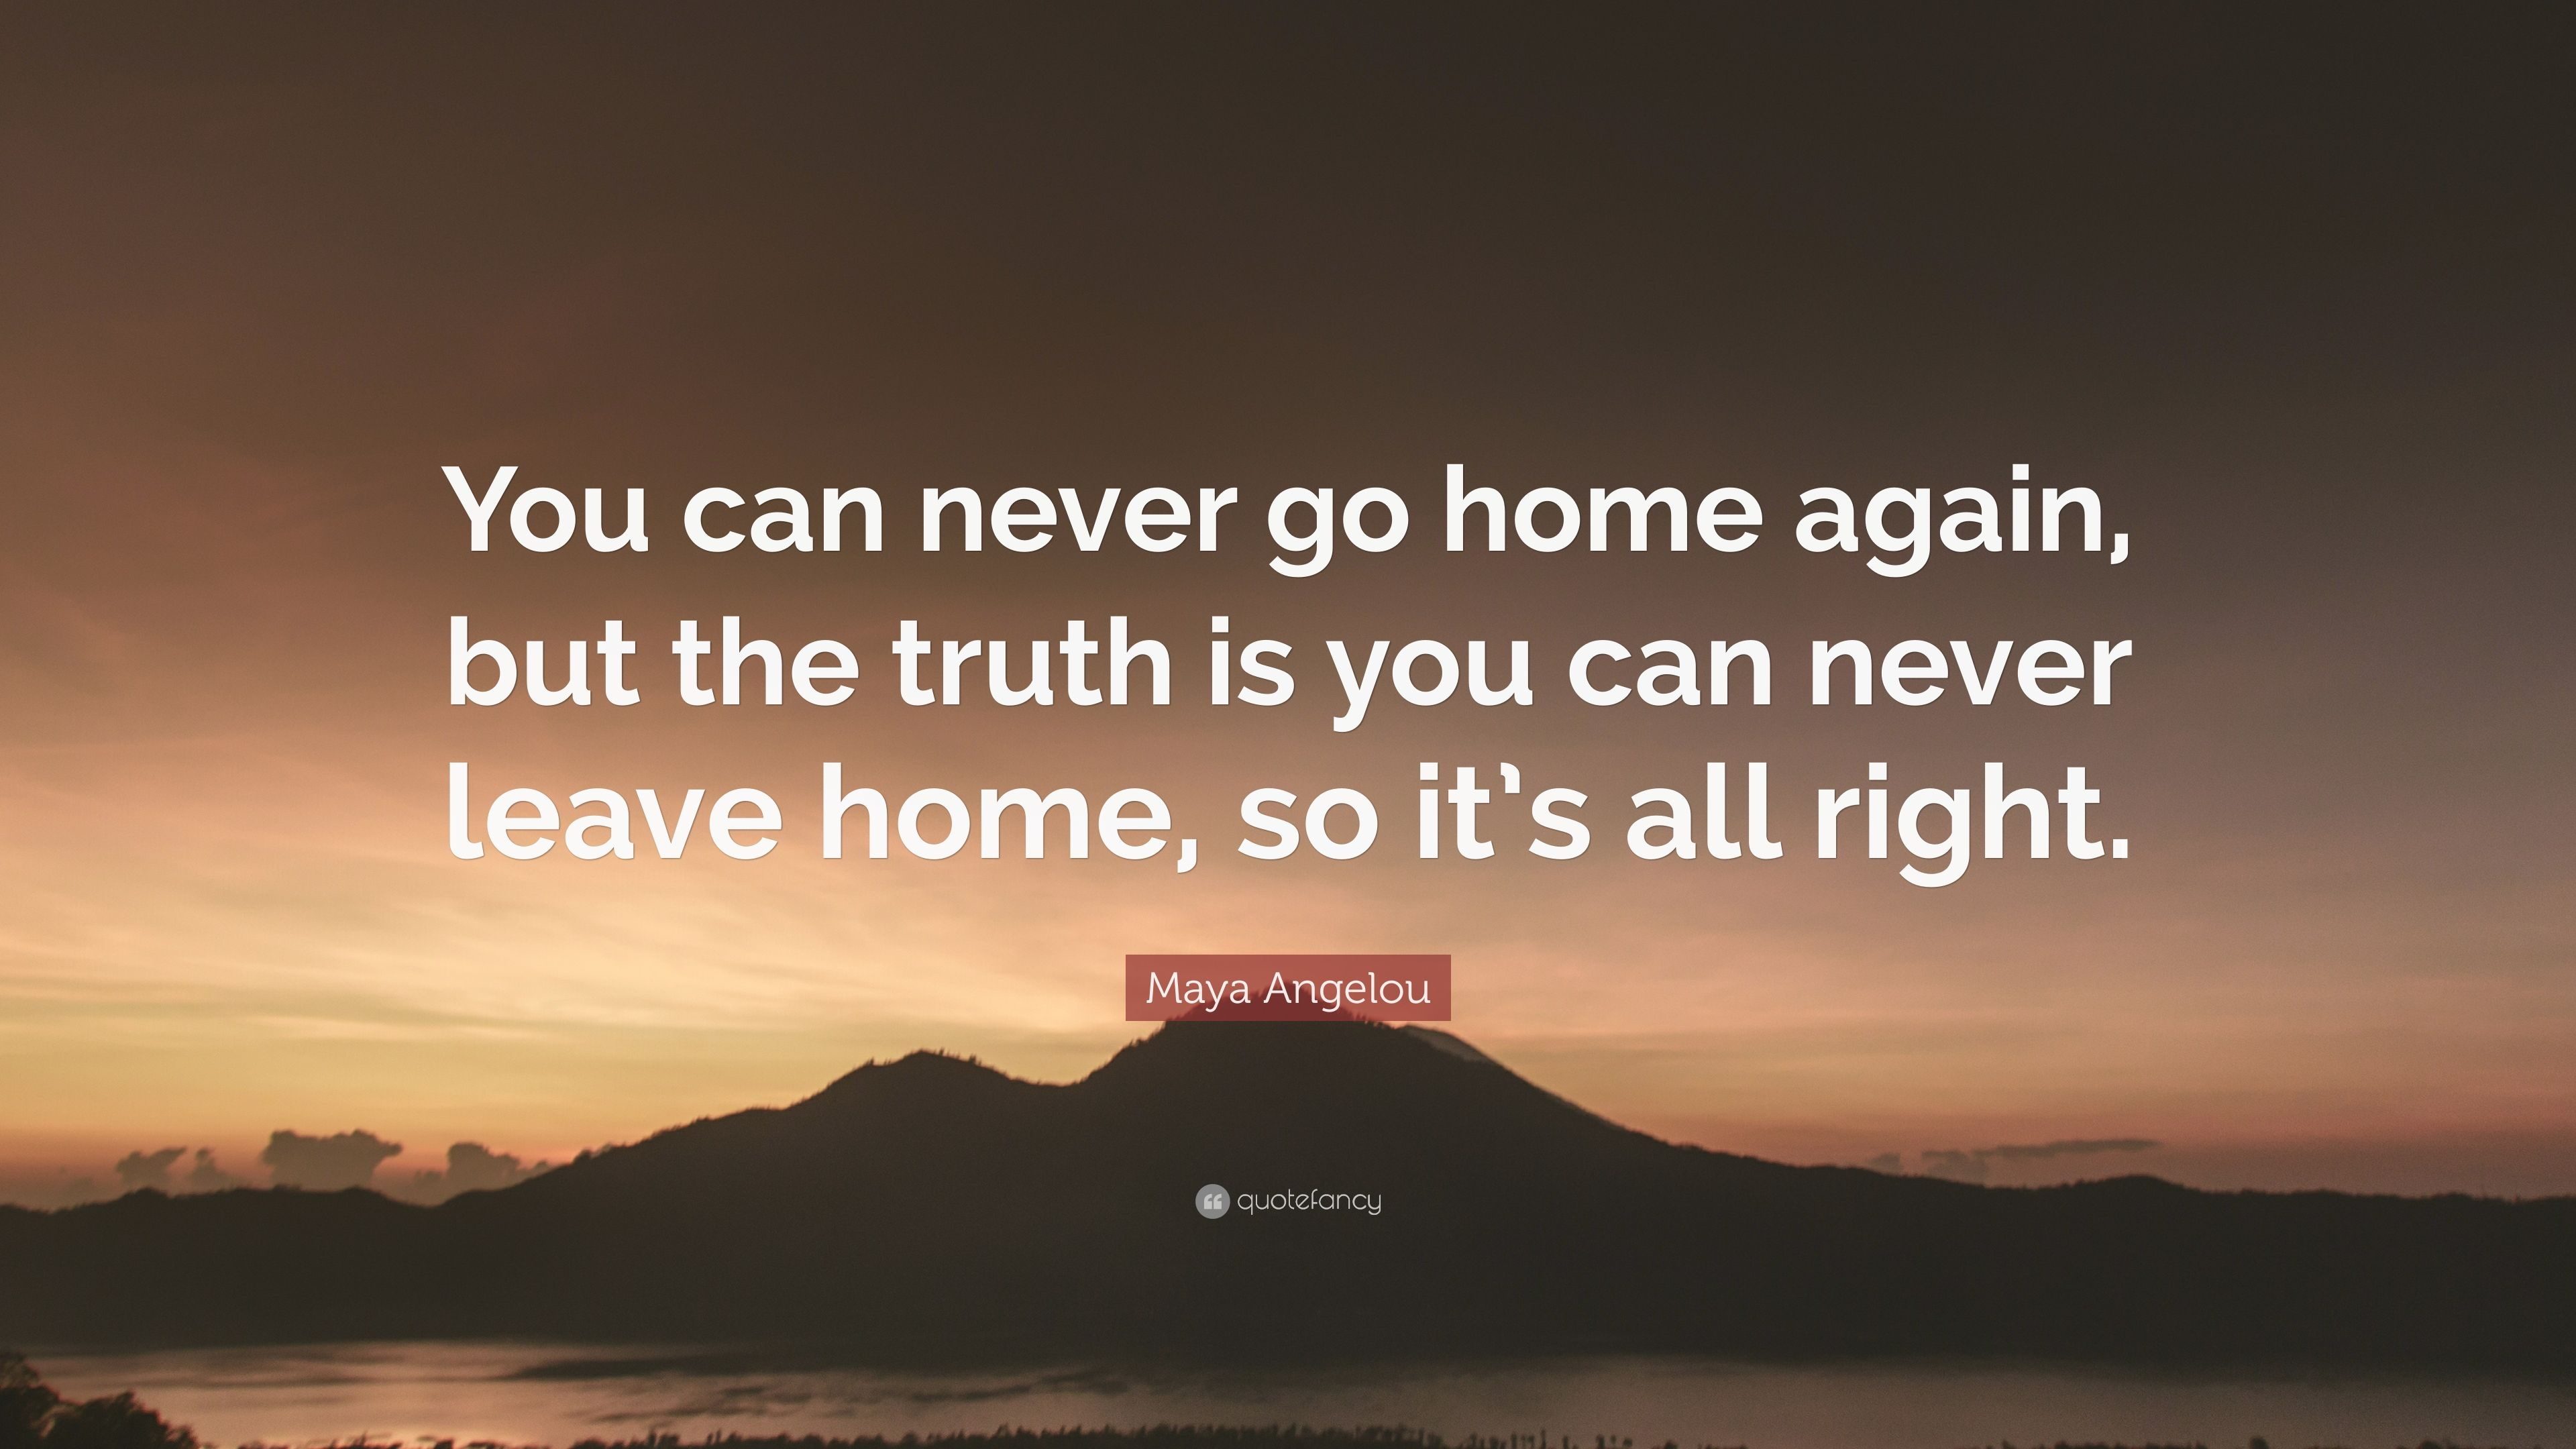 Maya Angelou Quote You Can Never Go Home Again But The Truth Is